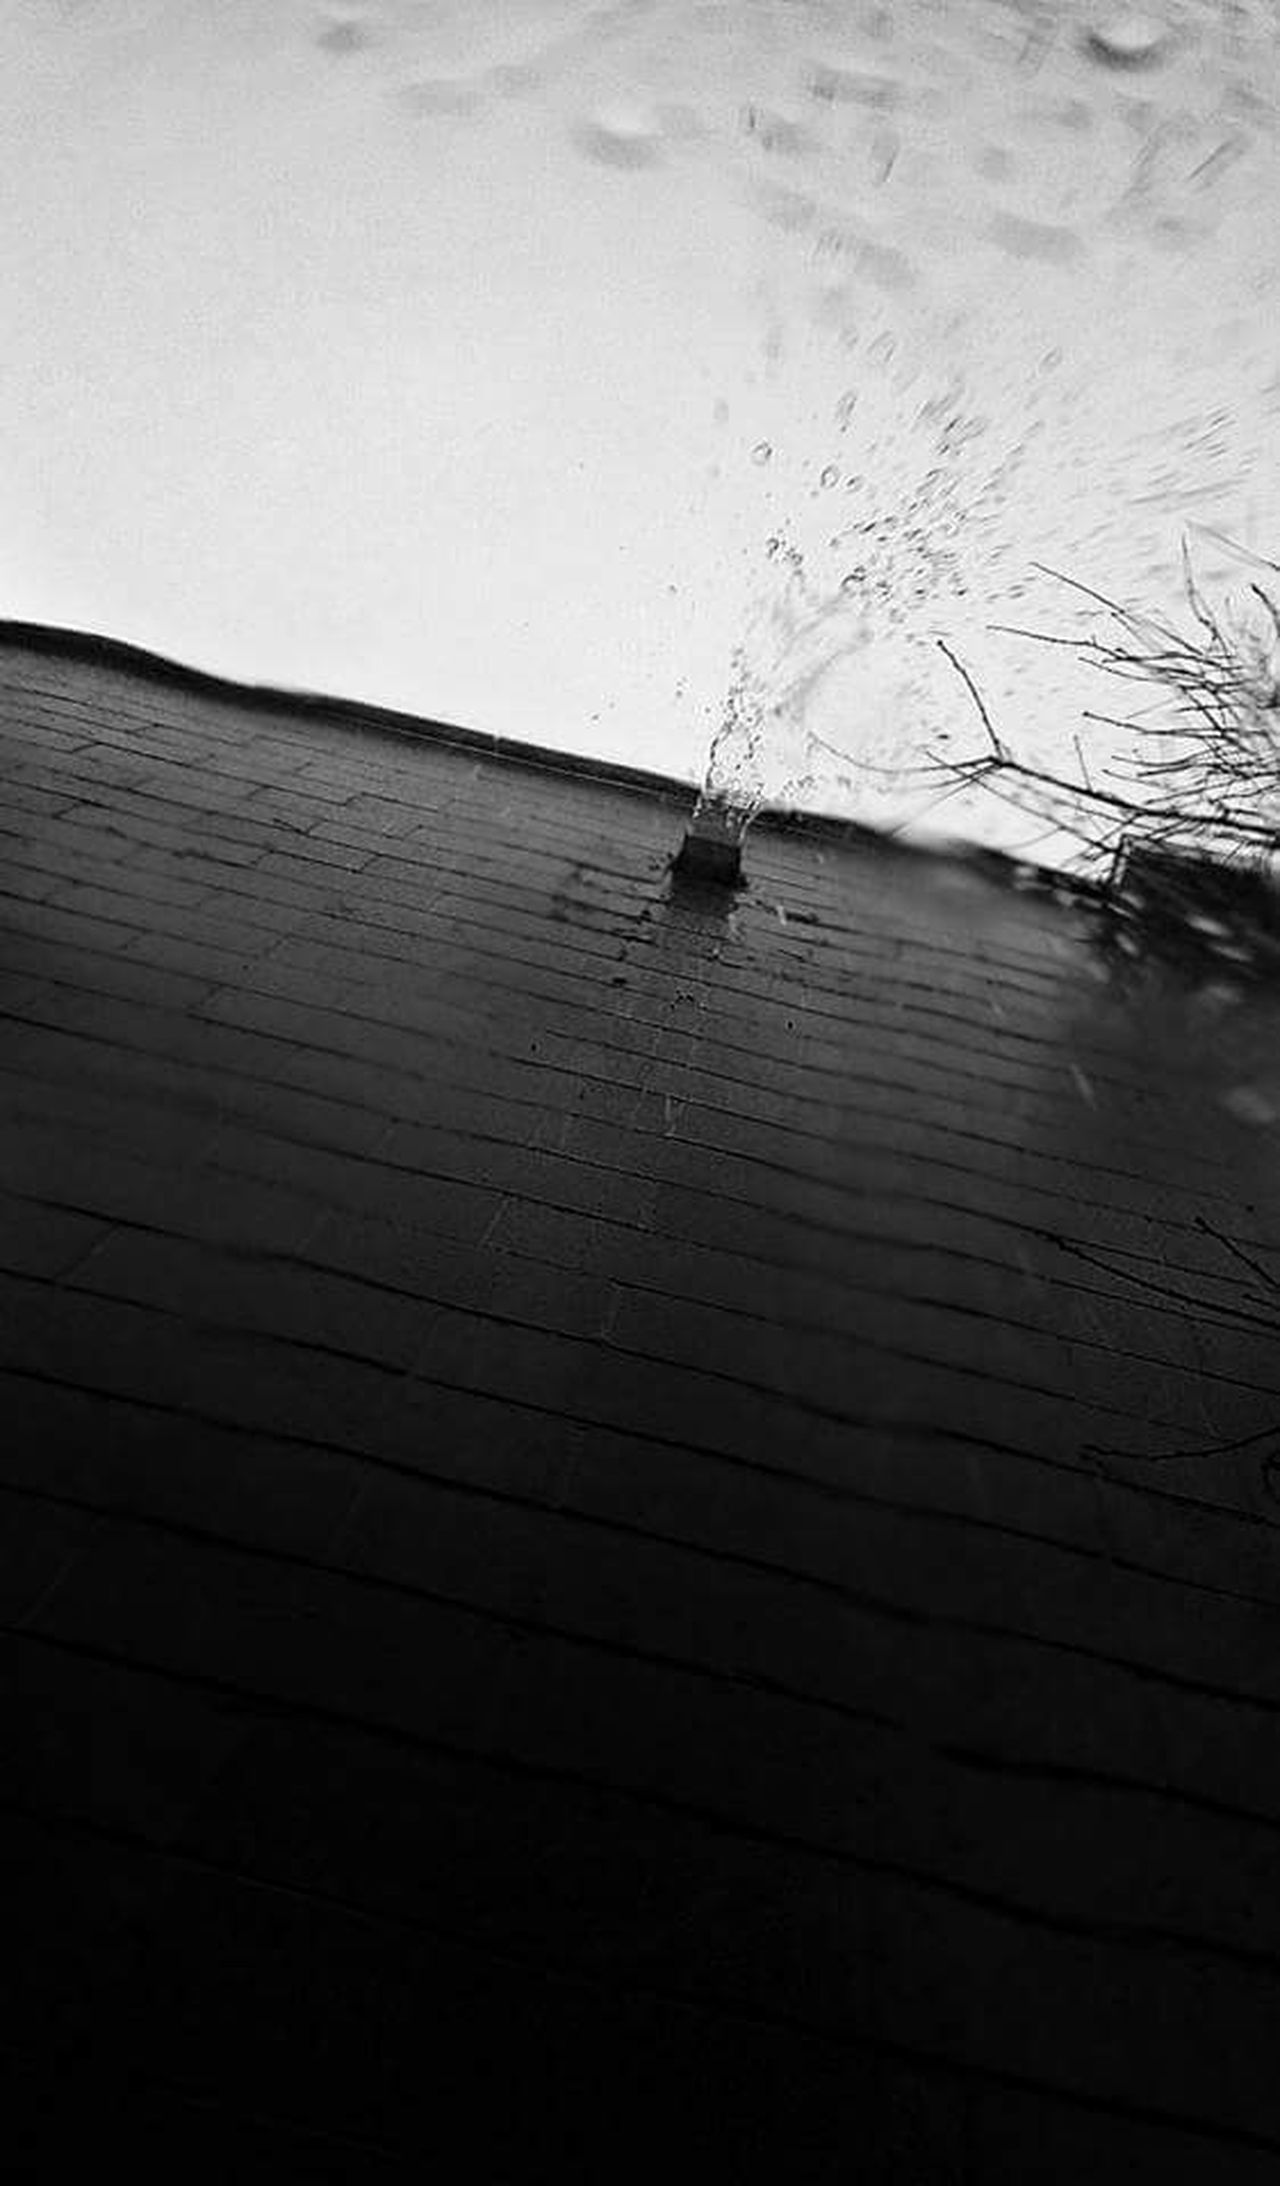 Water Black And White Rain Drops Outdoors Random Acts Of Photography Drainpipe Man Made Object Winter Rainy Days Enjoying Life No People Cloud - Sky In The Moments Sky